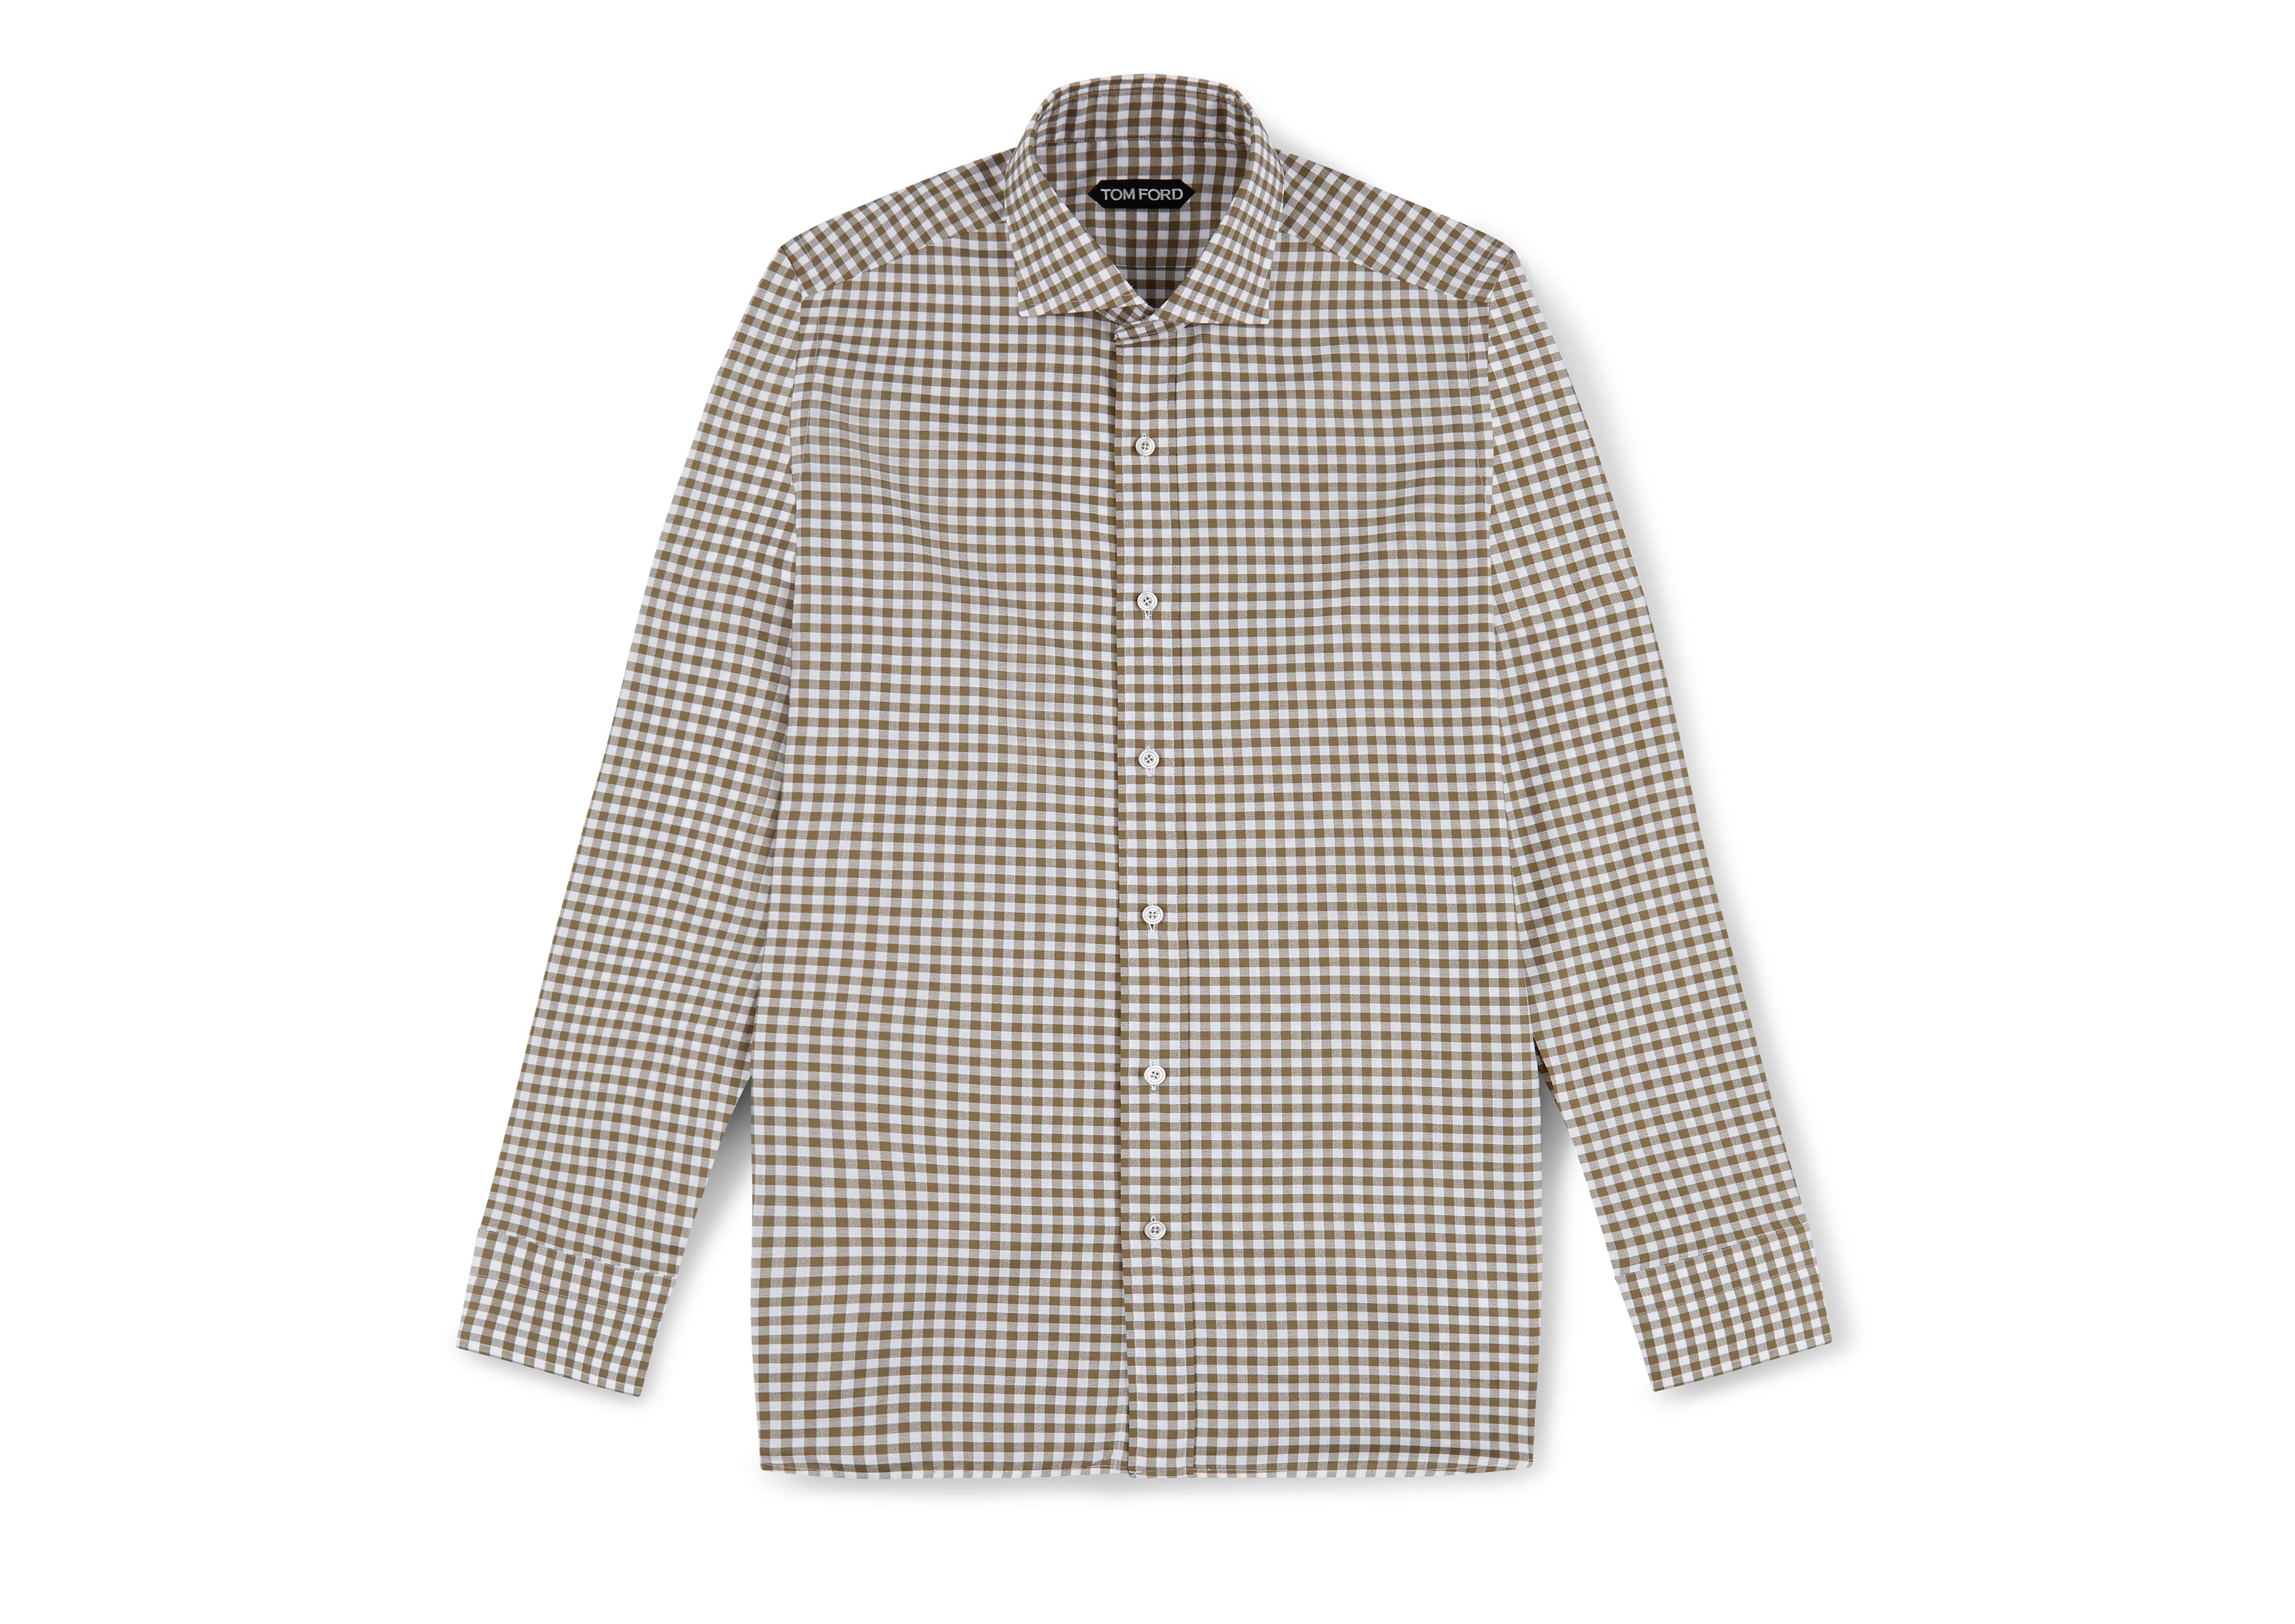 GINGHAM CLASSIC FIT SHIRT A thumbnail